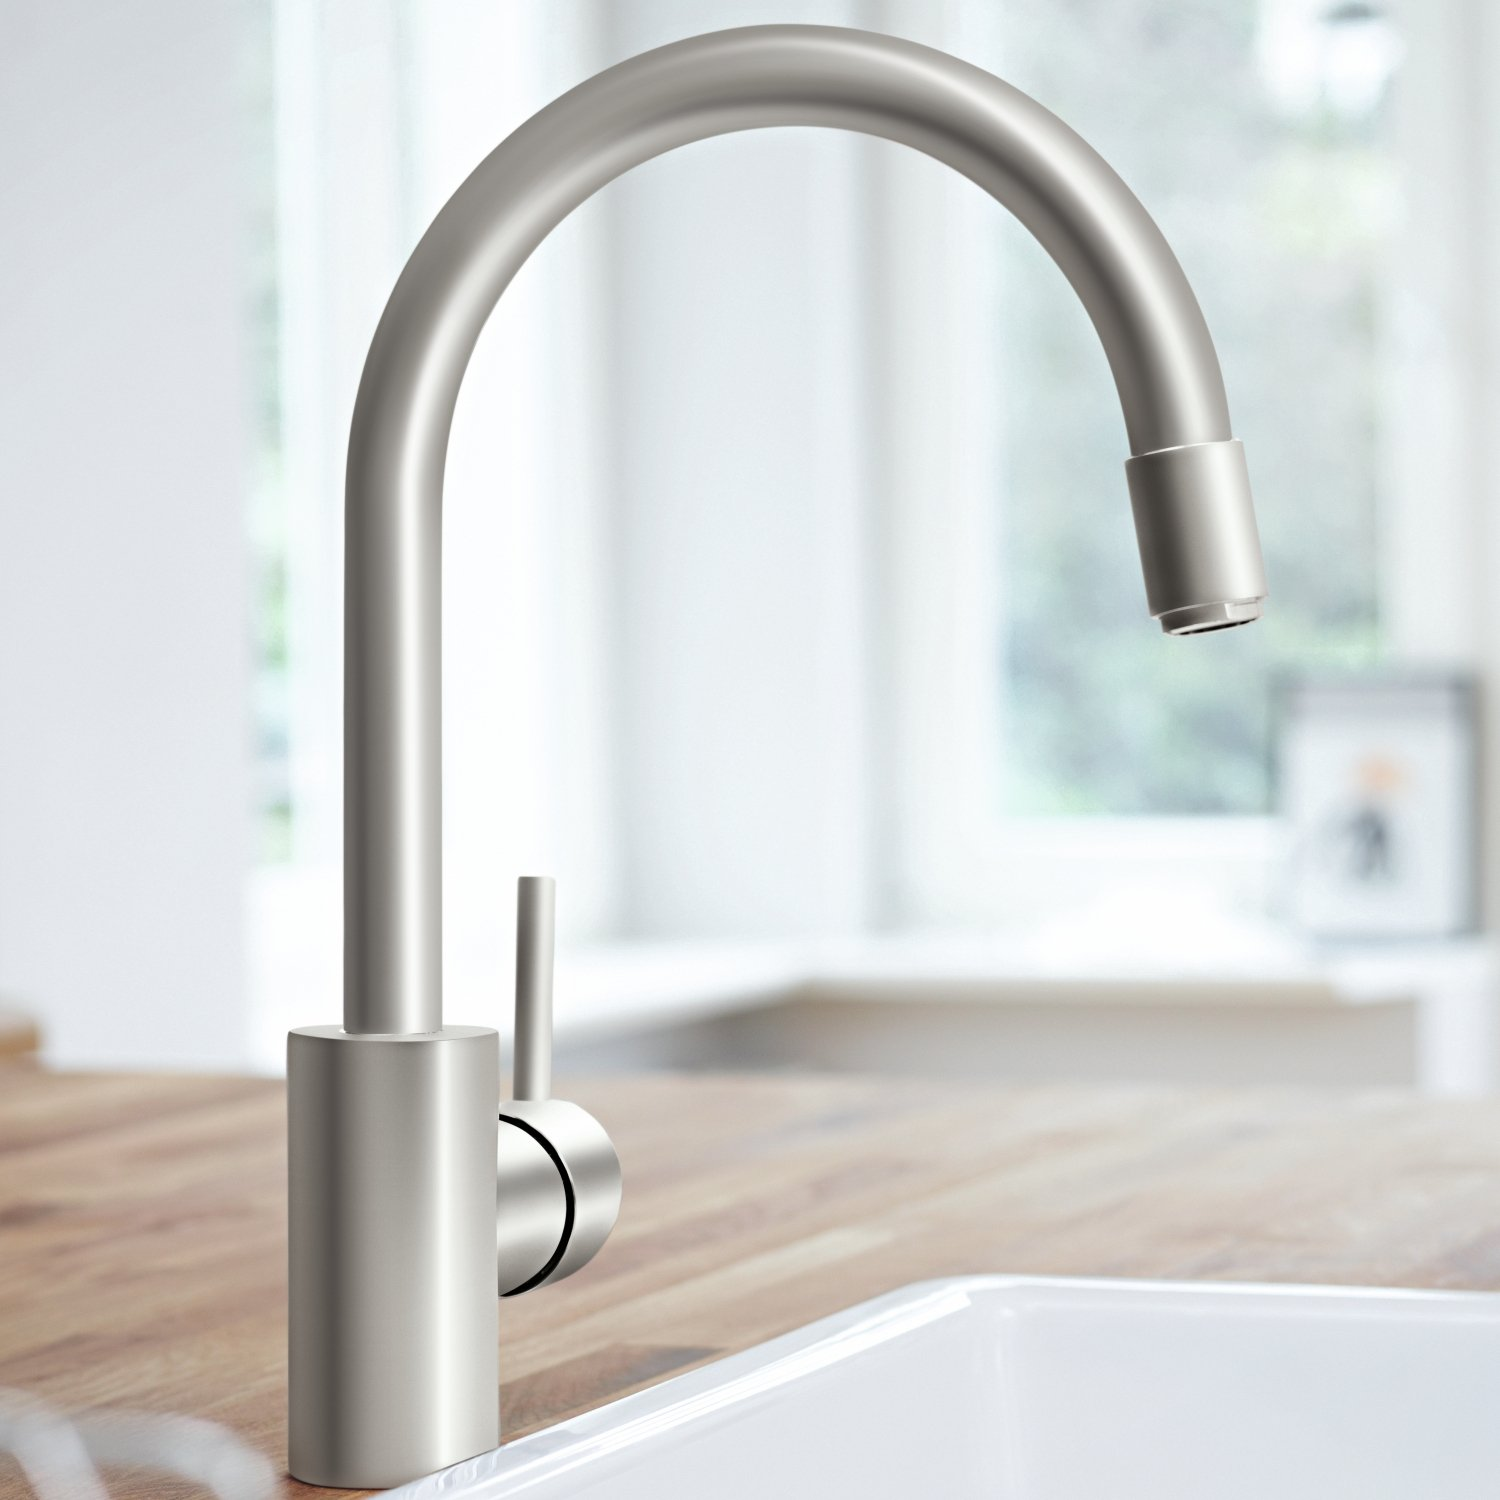 Amazon.com: GROHE one hand-SPT-mixer Concetto 32663 bow spout ...